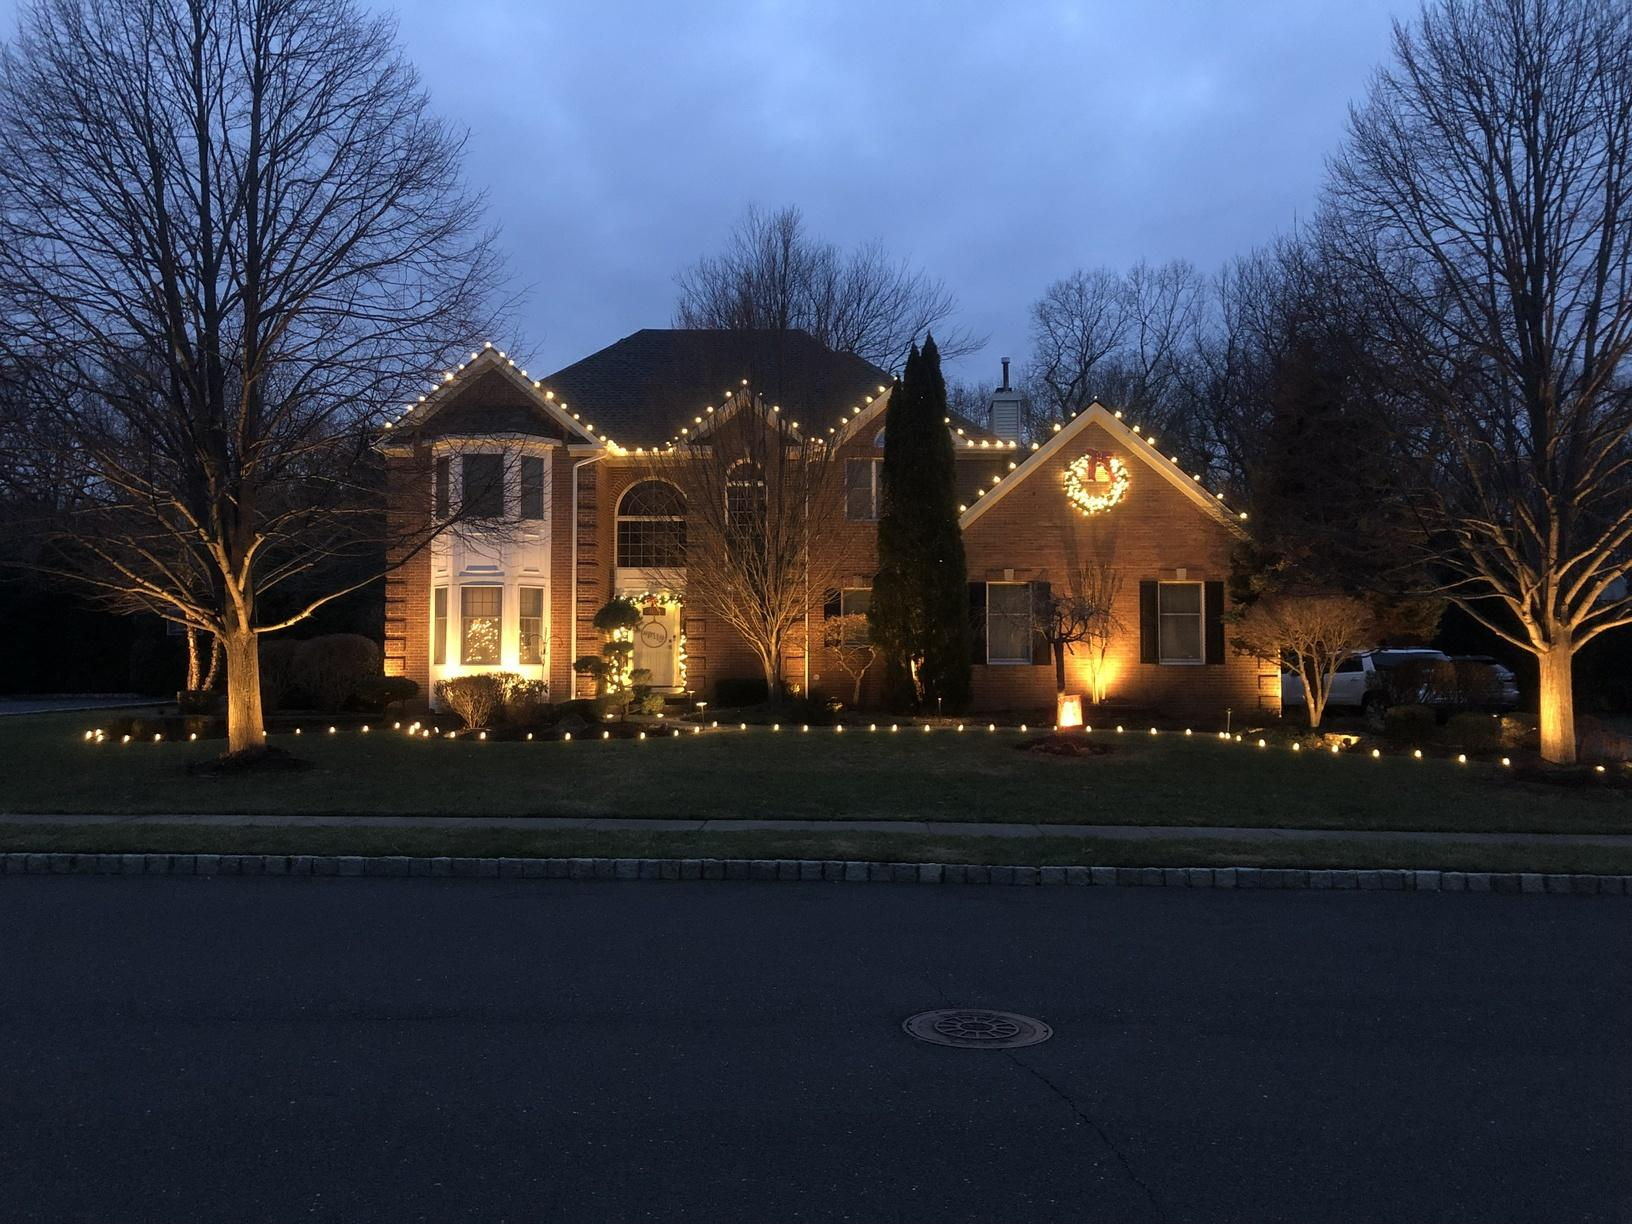 Professional Christmas Decorating in Manasquan, NJ